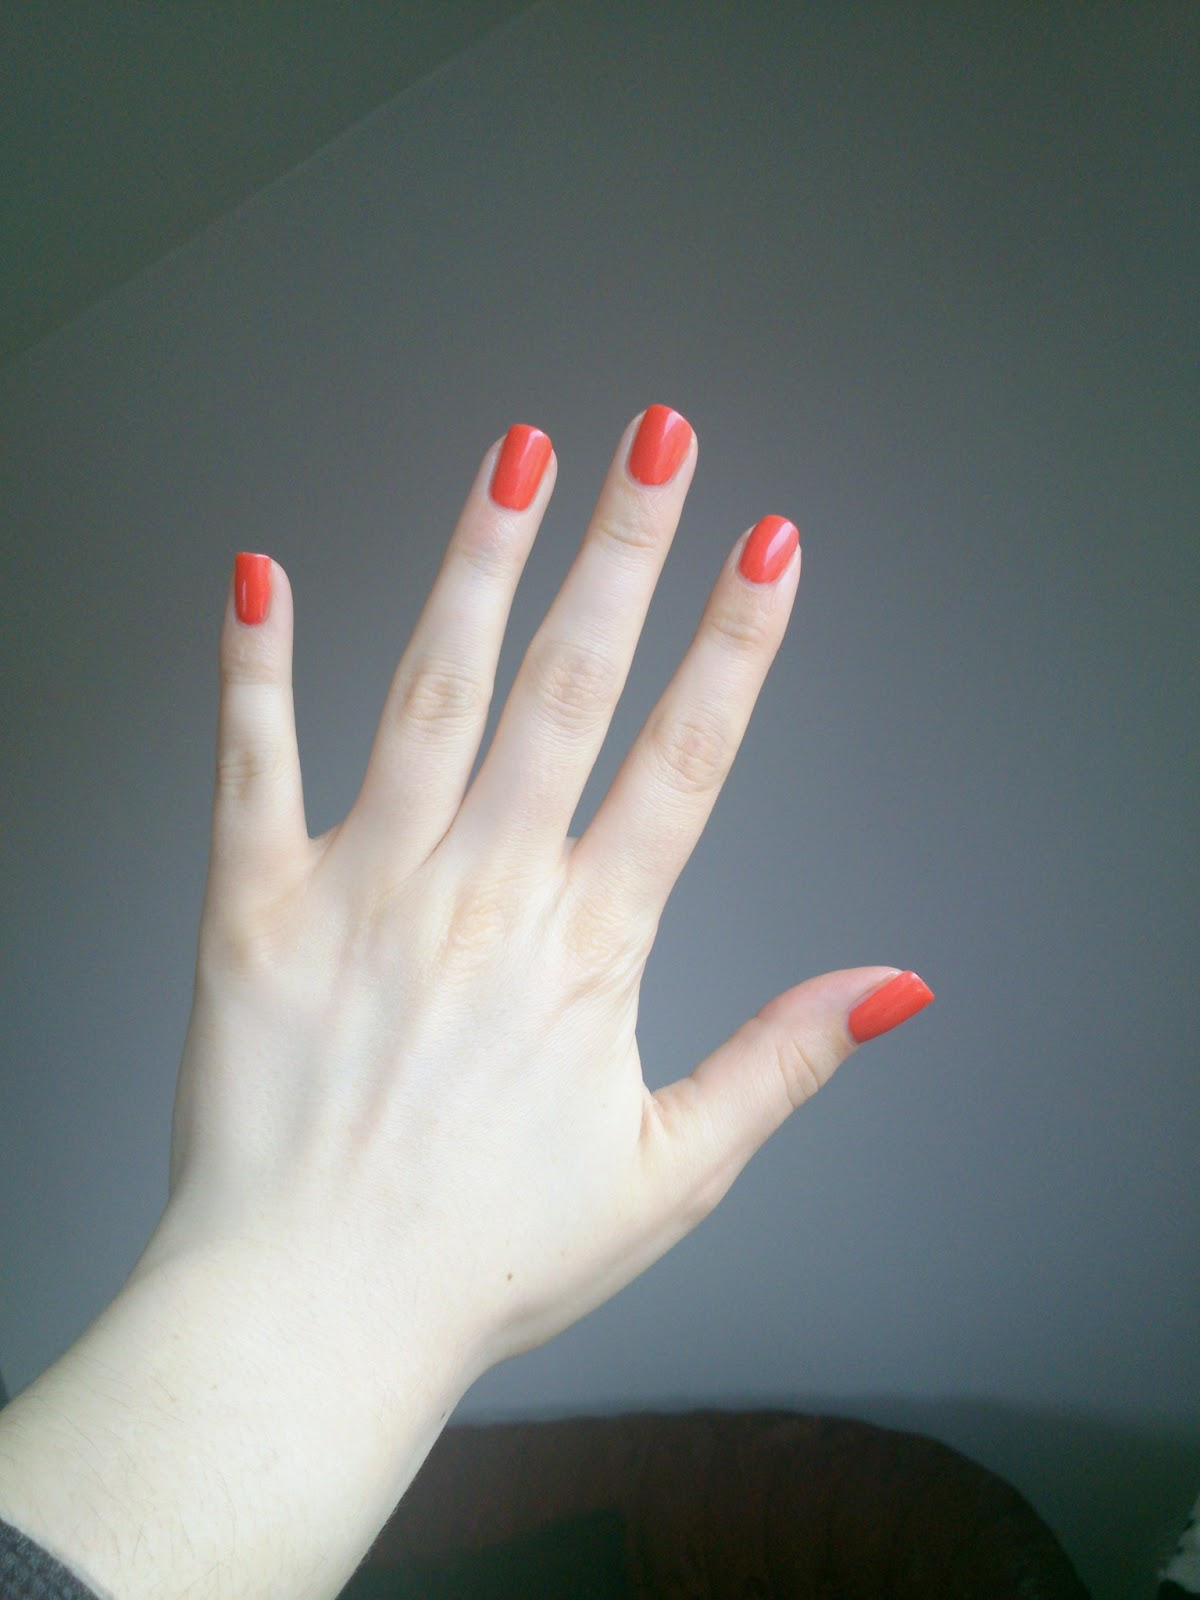 loreal dating coral nagellack L'oreal le vernis a l'huile, l'oreal's brand new oil infused nail polish miss holly berries: i cant seem to find any info on a release date.